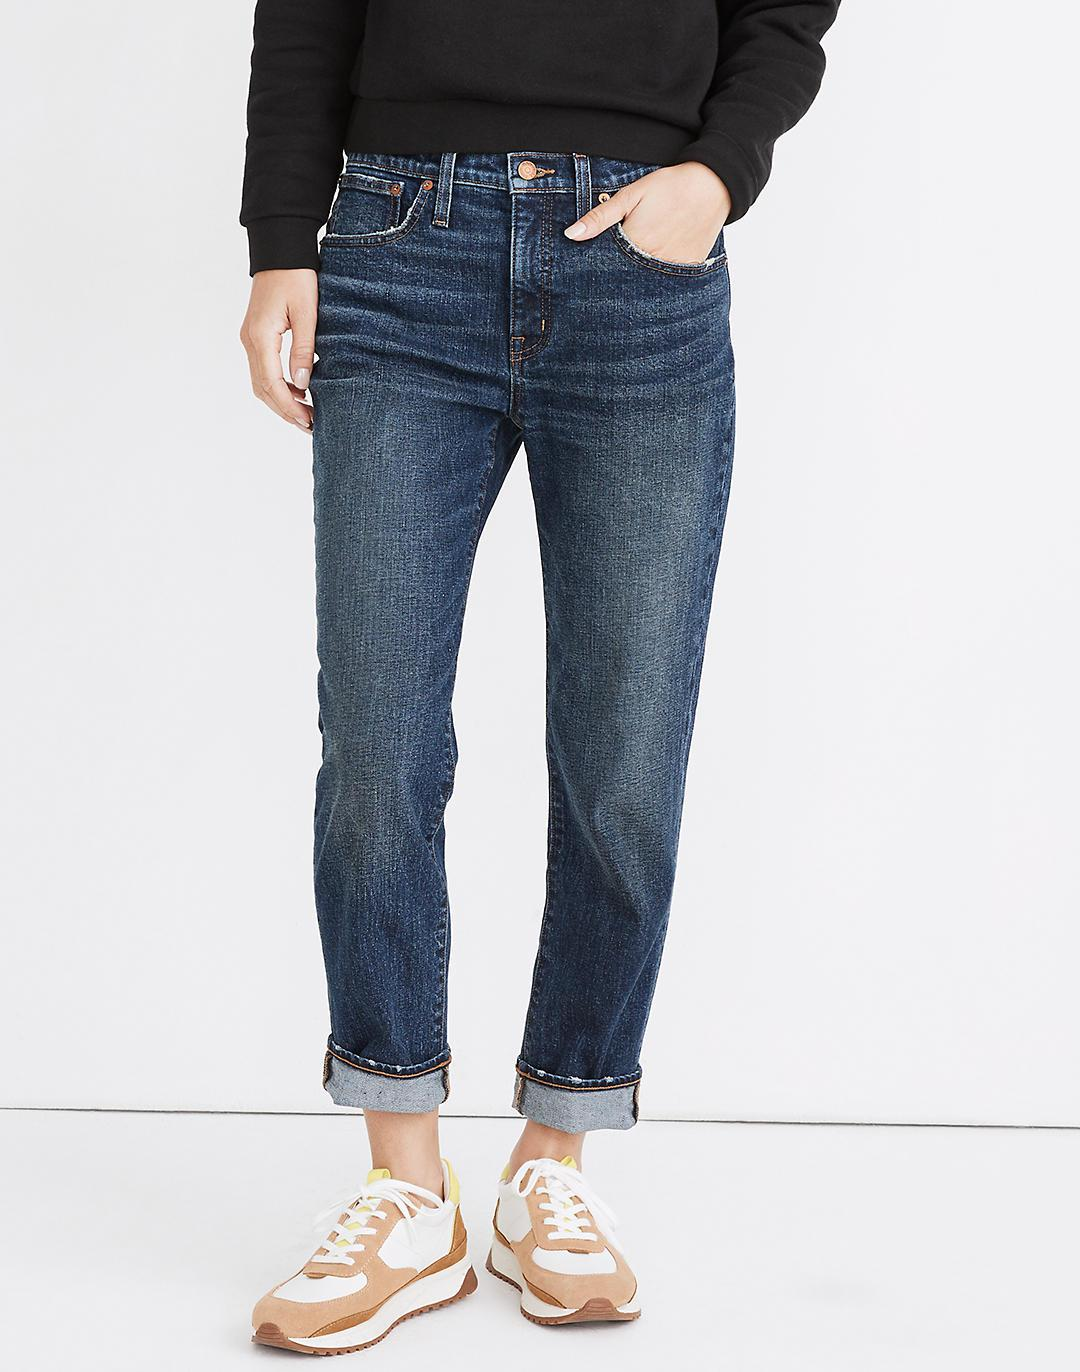 Tomboy Straight Jeans in Chaseley Wash 3